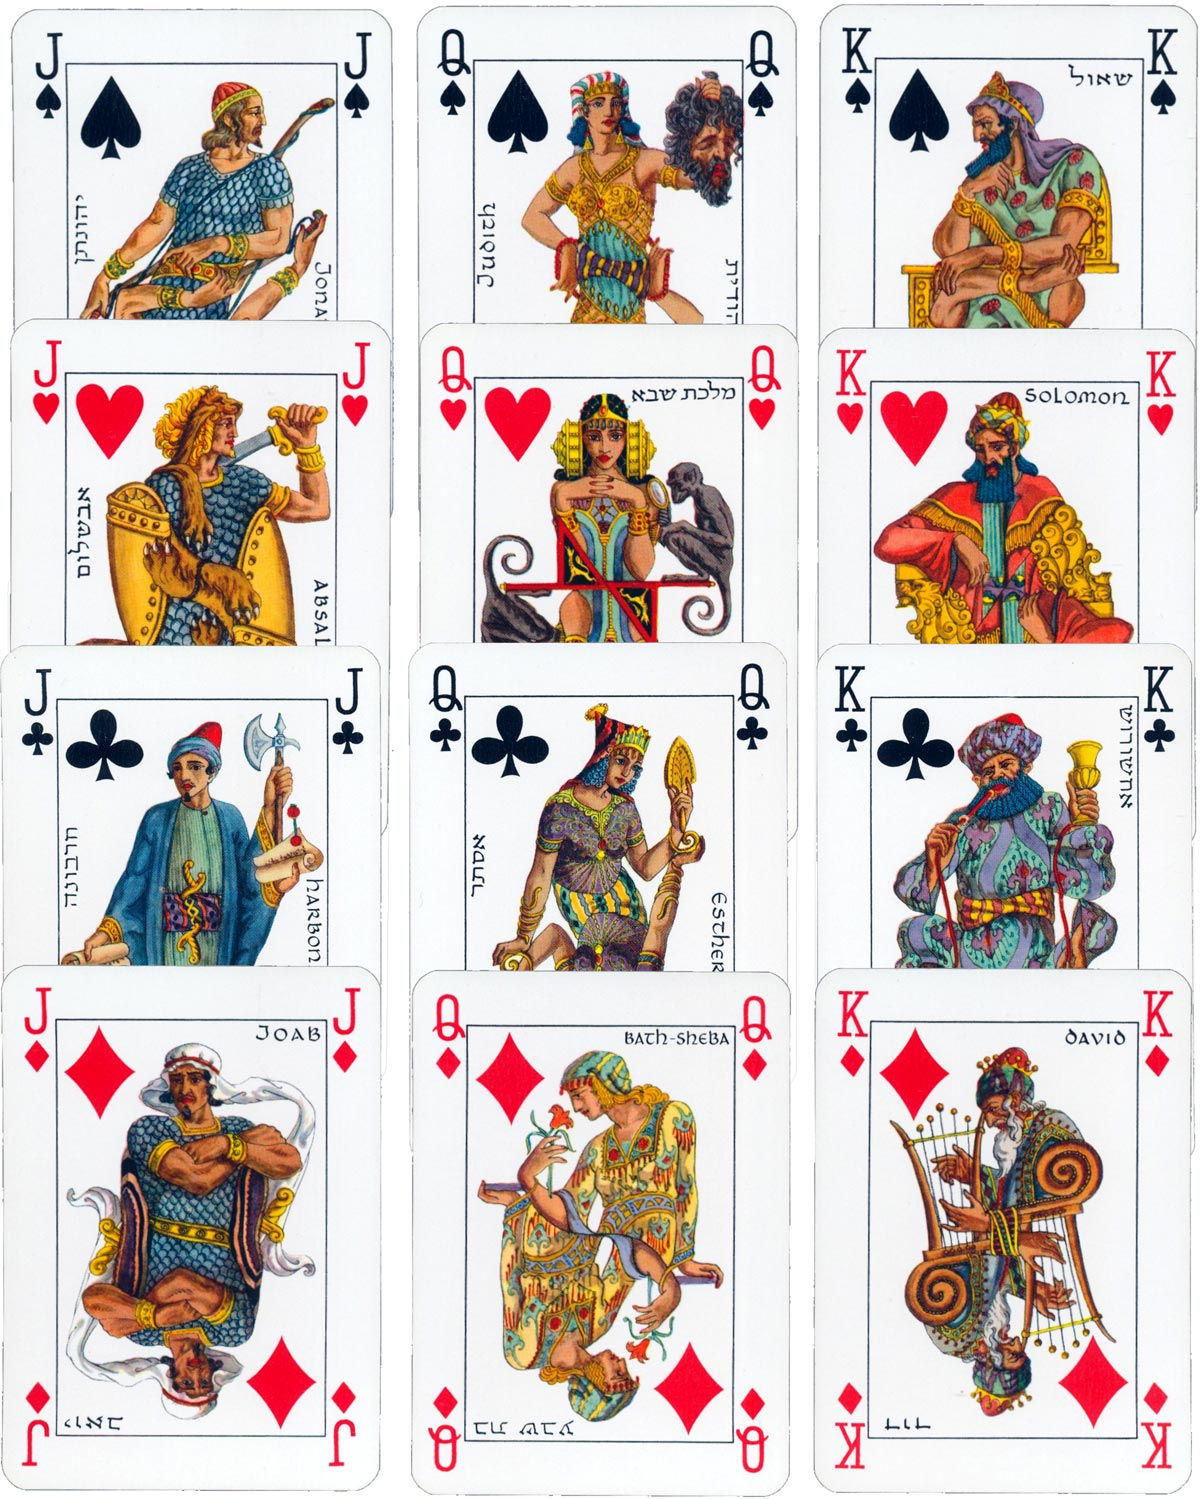 Jacob's Bible Cards published by Lion Playing Card Factory Ltd, Tel Aviv, 1980s